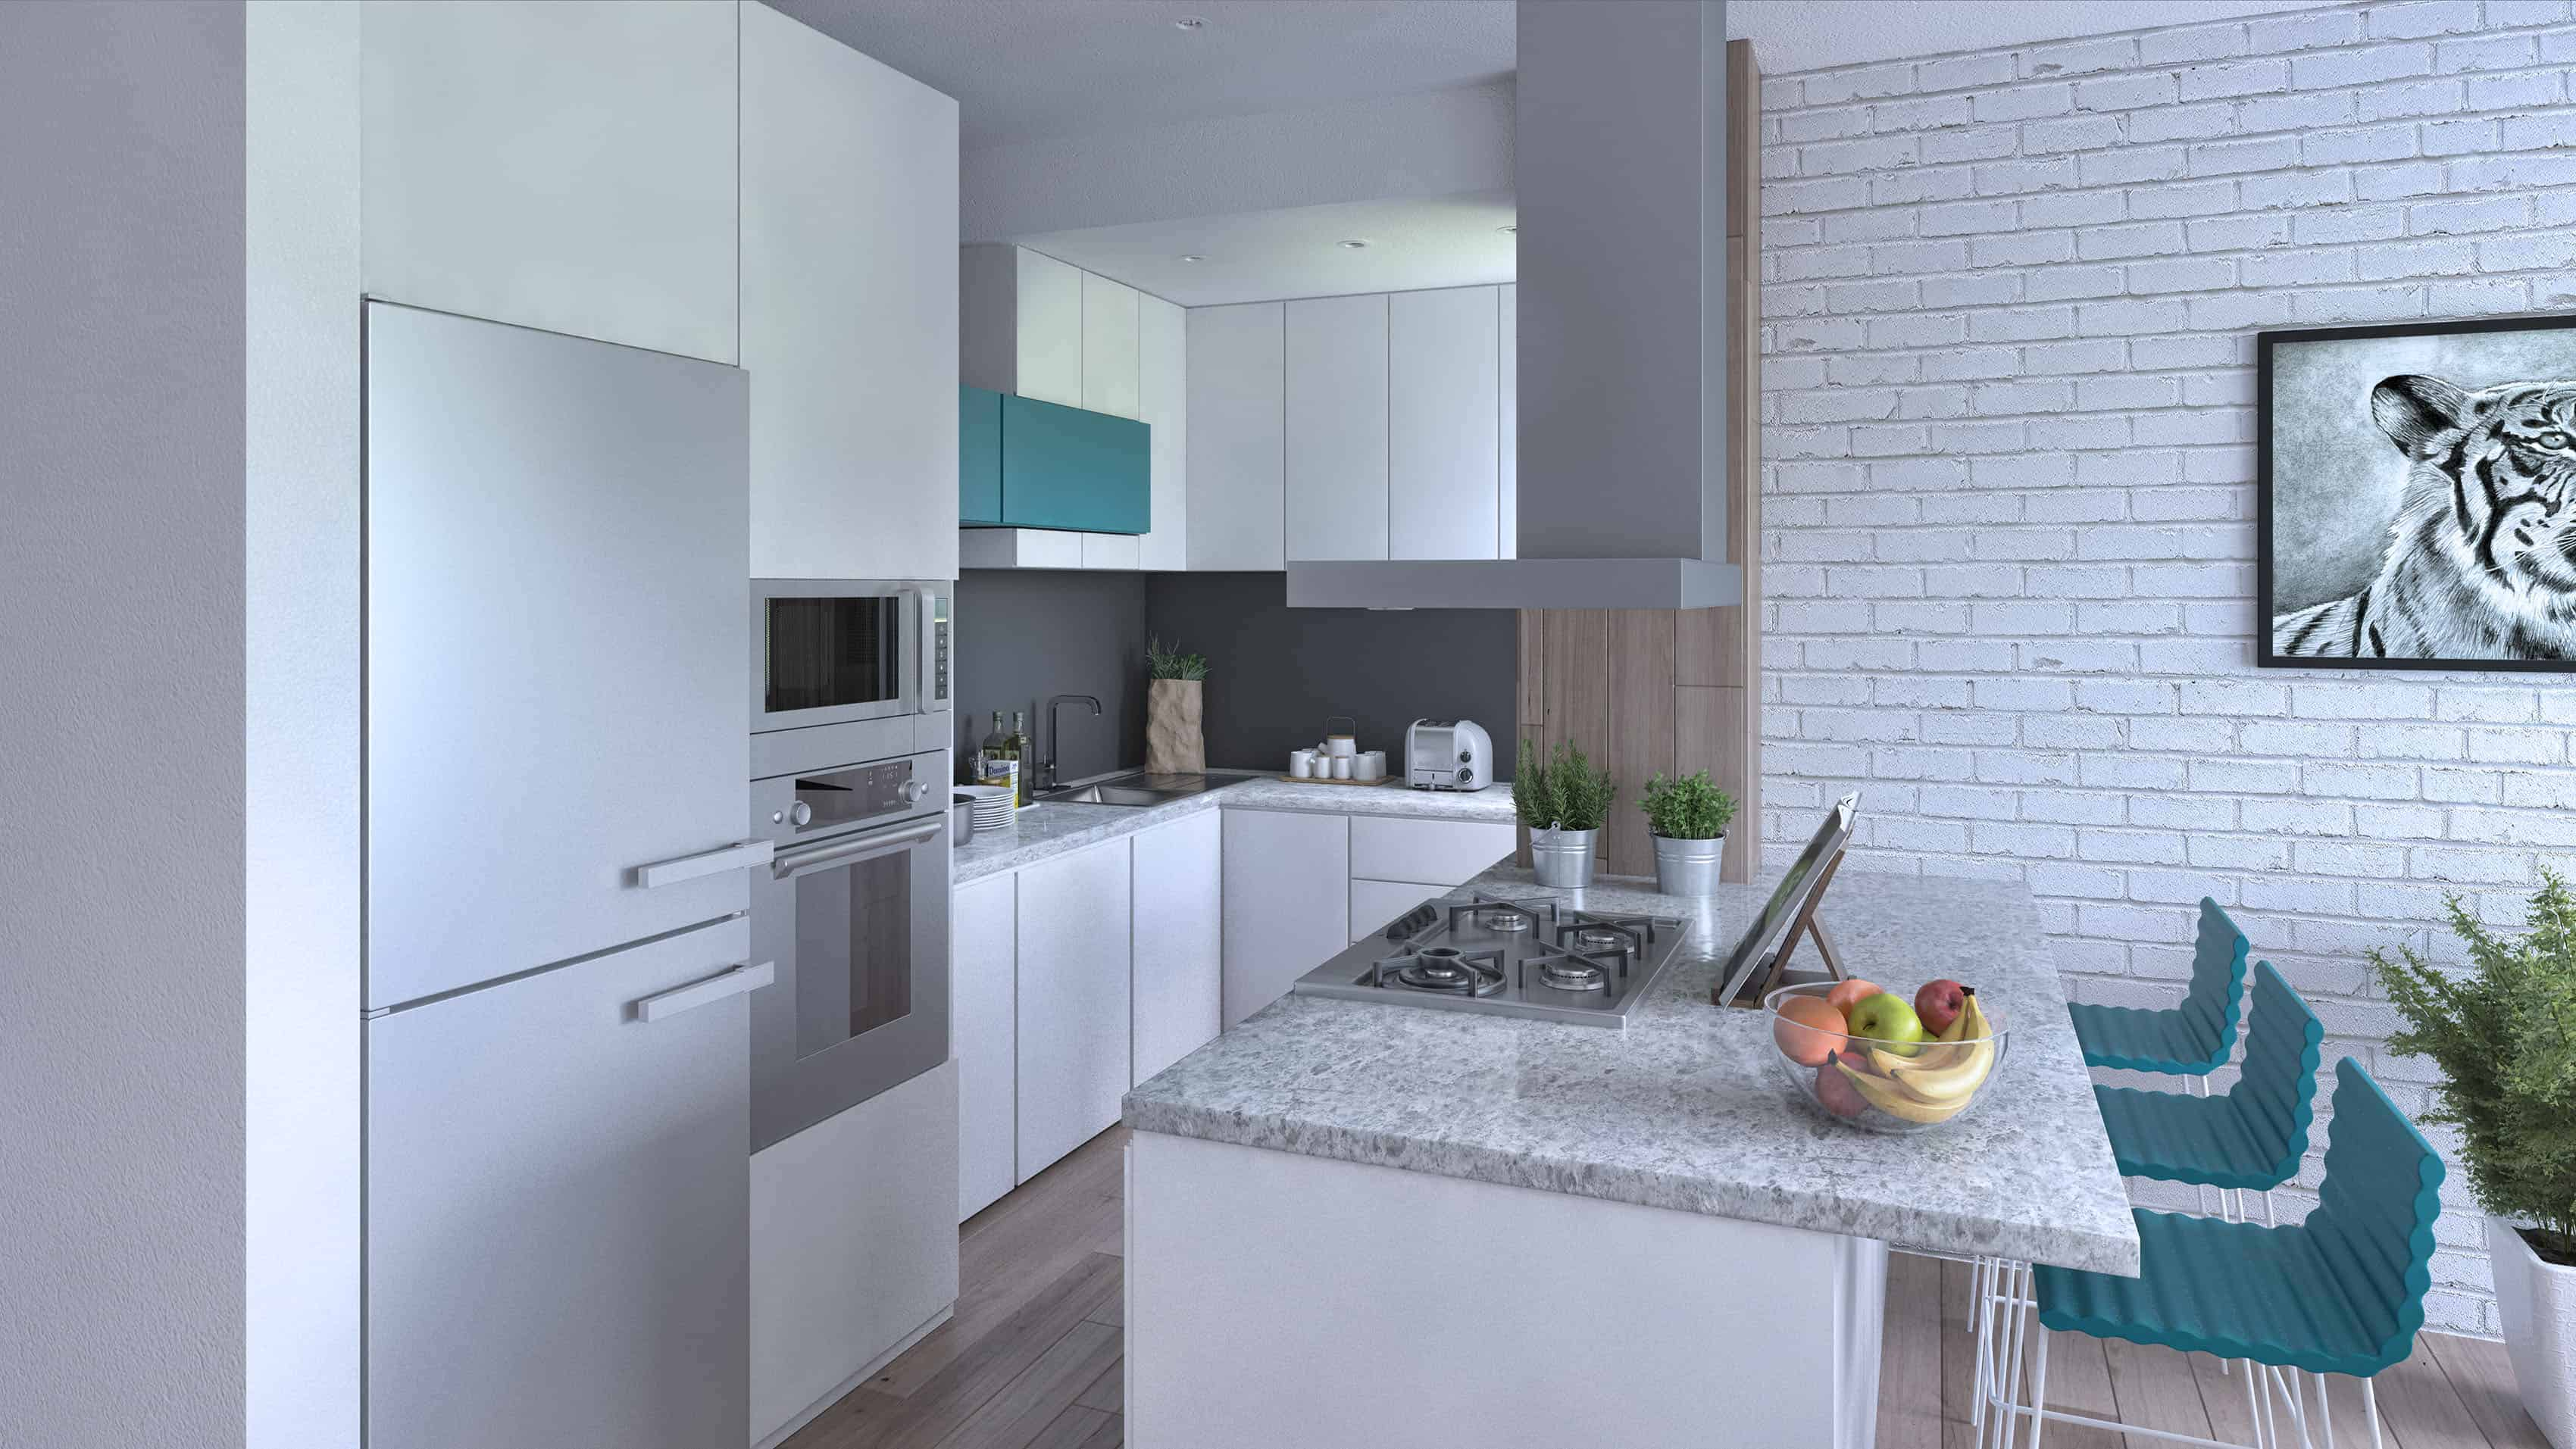 I Used 3ds Max To Build The Scene From Existing Autocad File. V Ray Render  Engine Is Used For Texturing And Lighting The Scene. The Scene Is Lightened  With ...